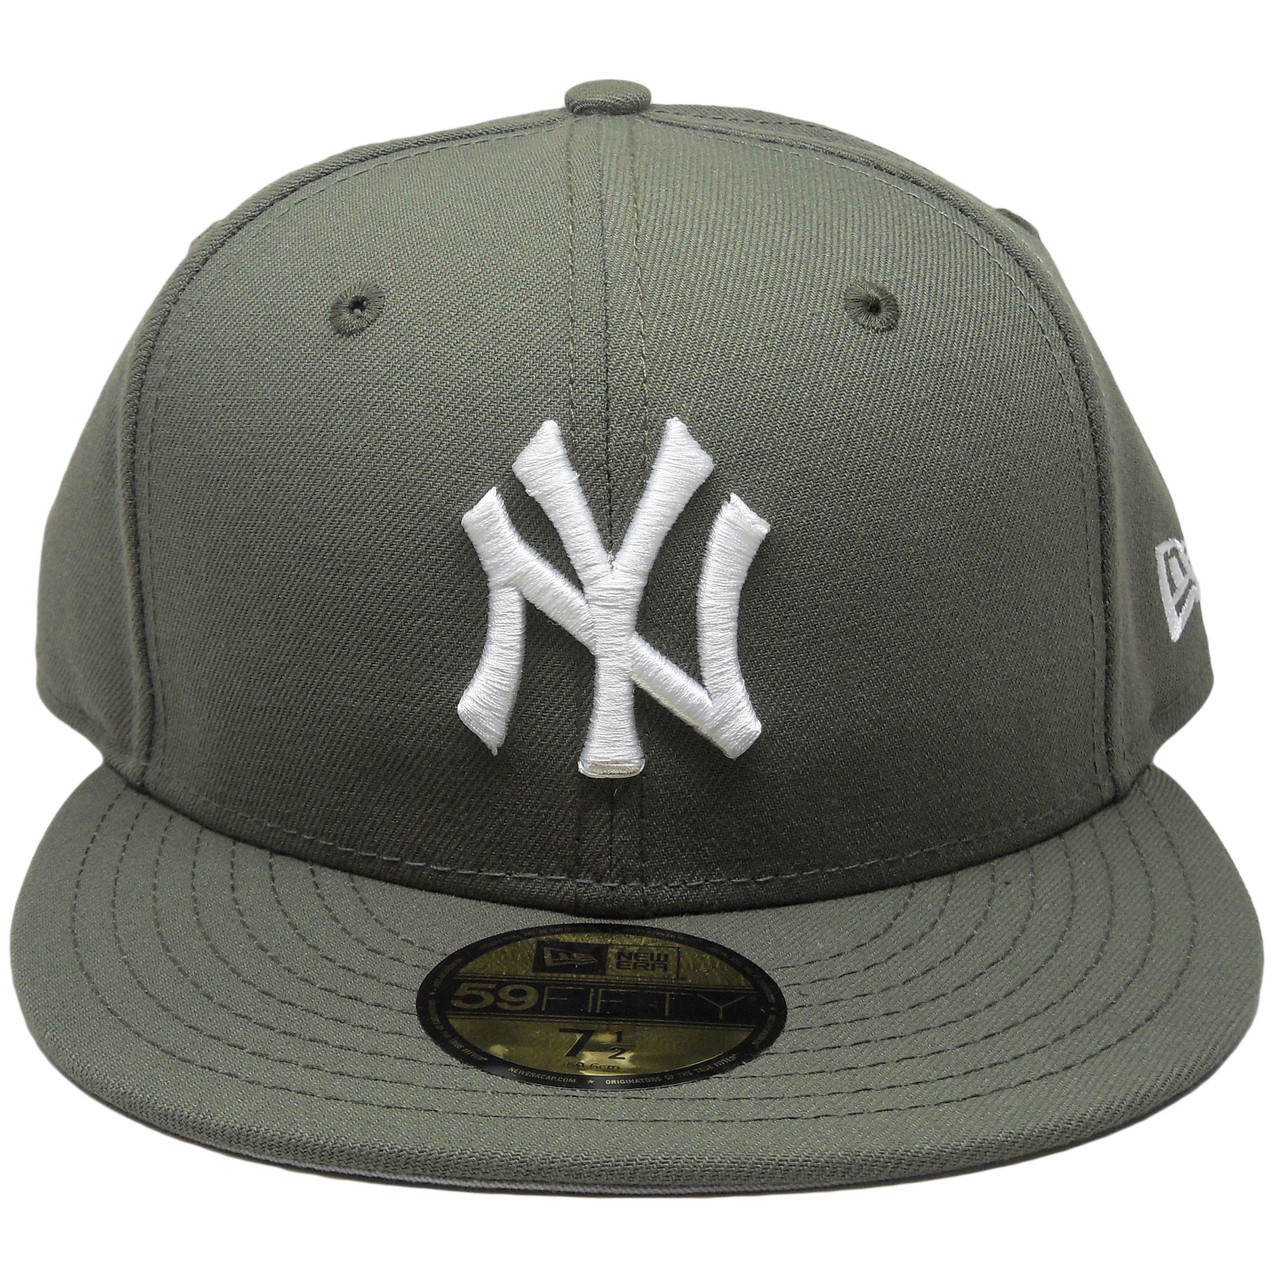 1012d81feaa6f New York Yankees New Era Custom 59Fifty Fitted Hat - New Olive ...